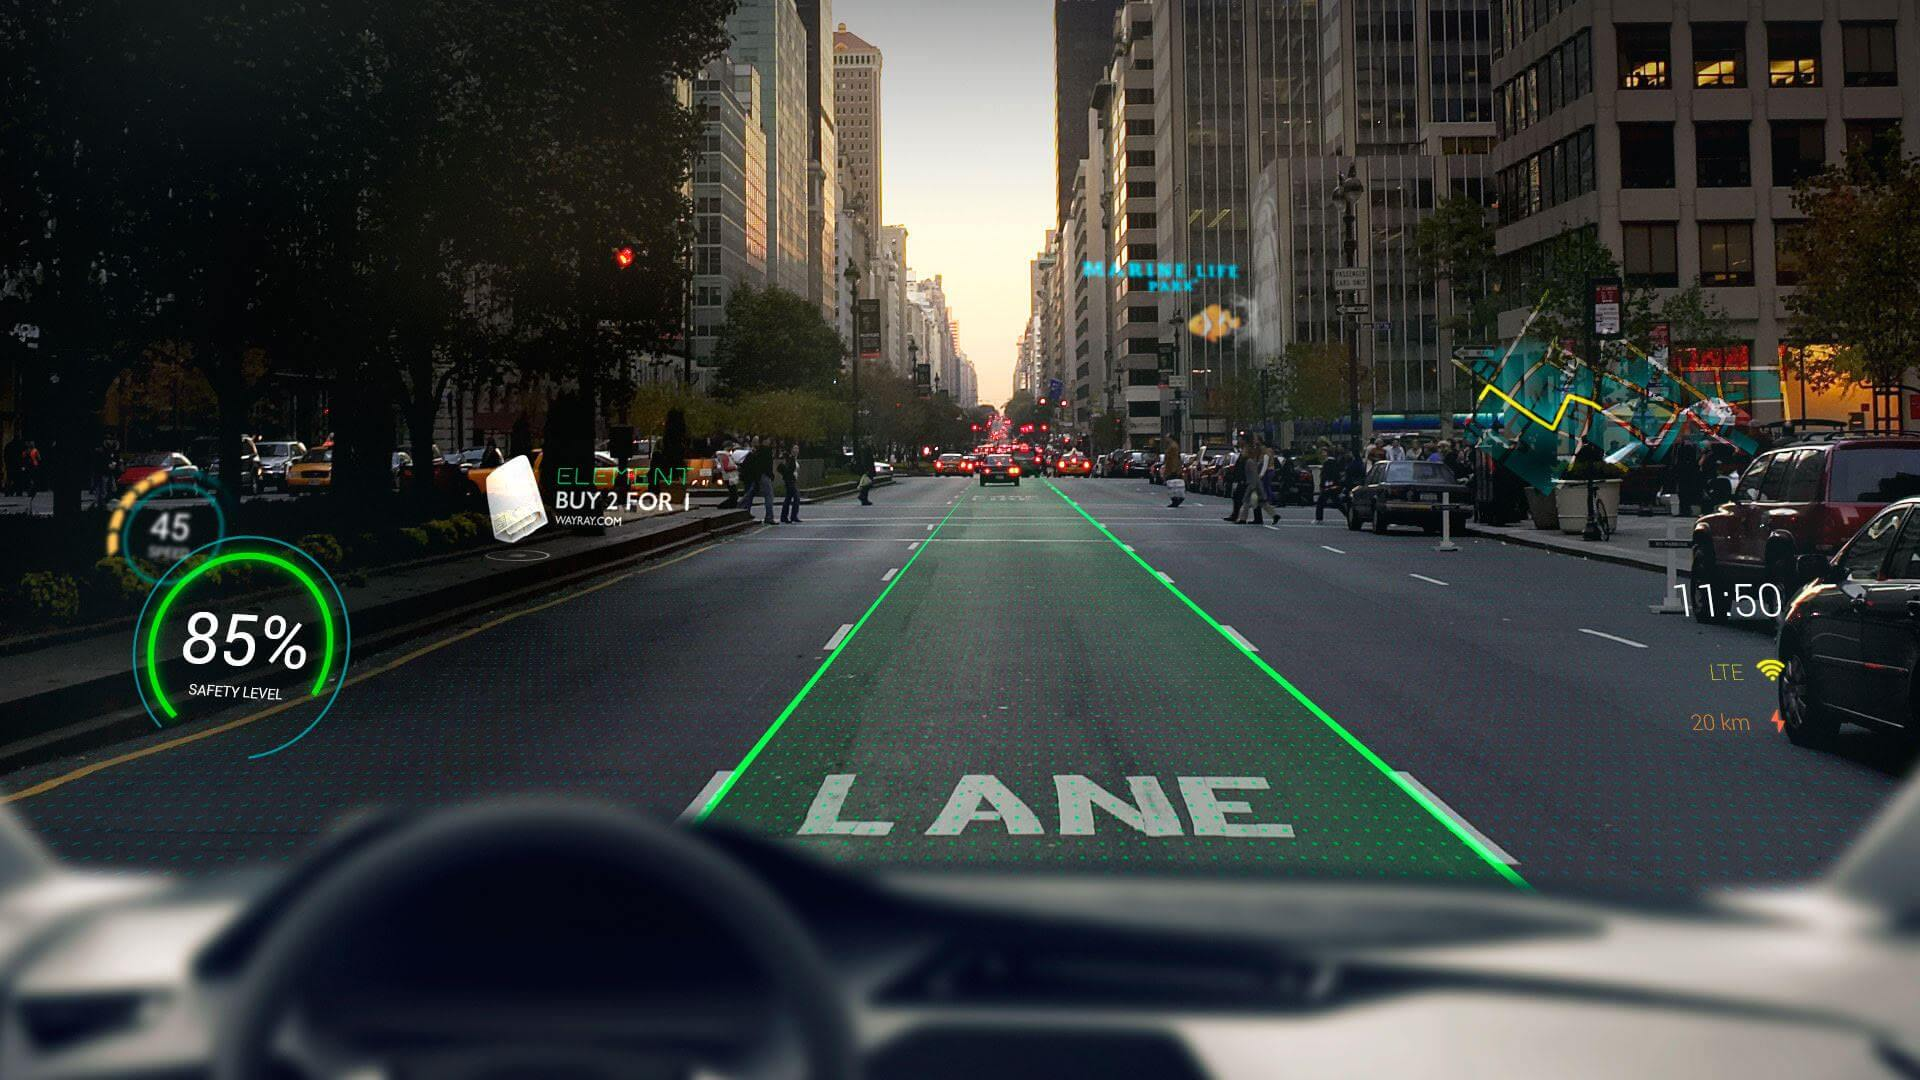 Ford is Using Microsoft's HoloLens to Design Cars in Mixed Reality